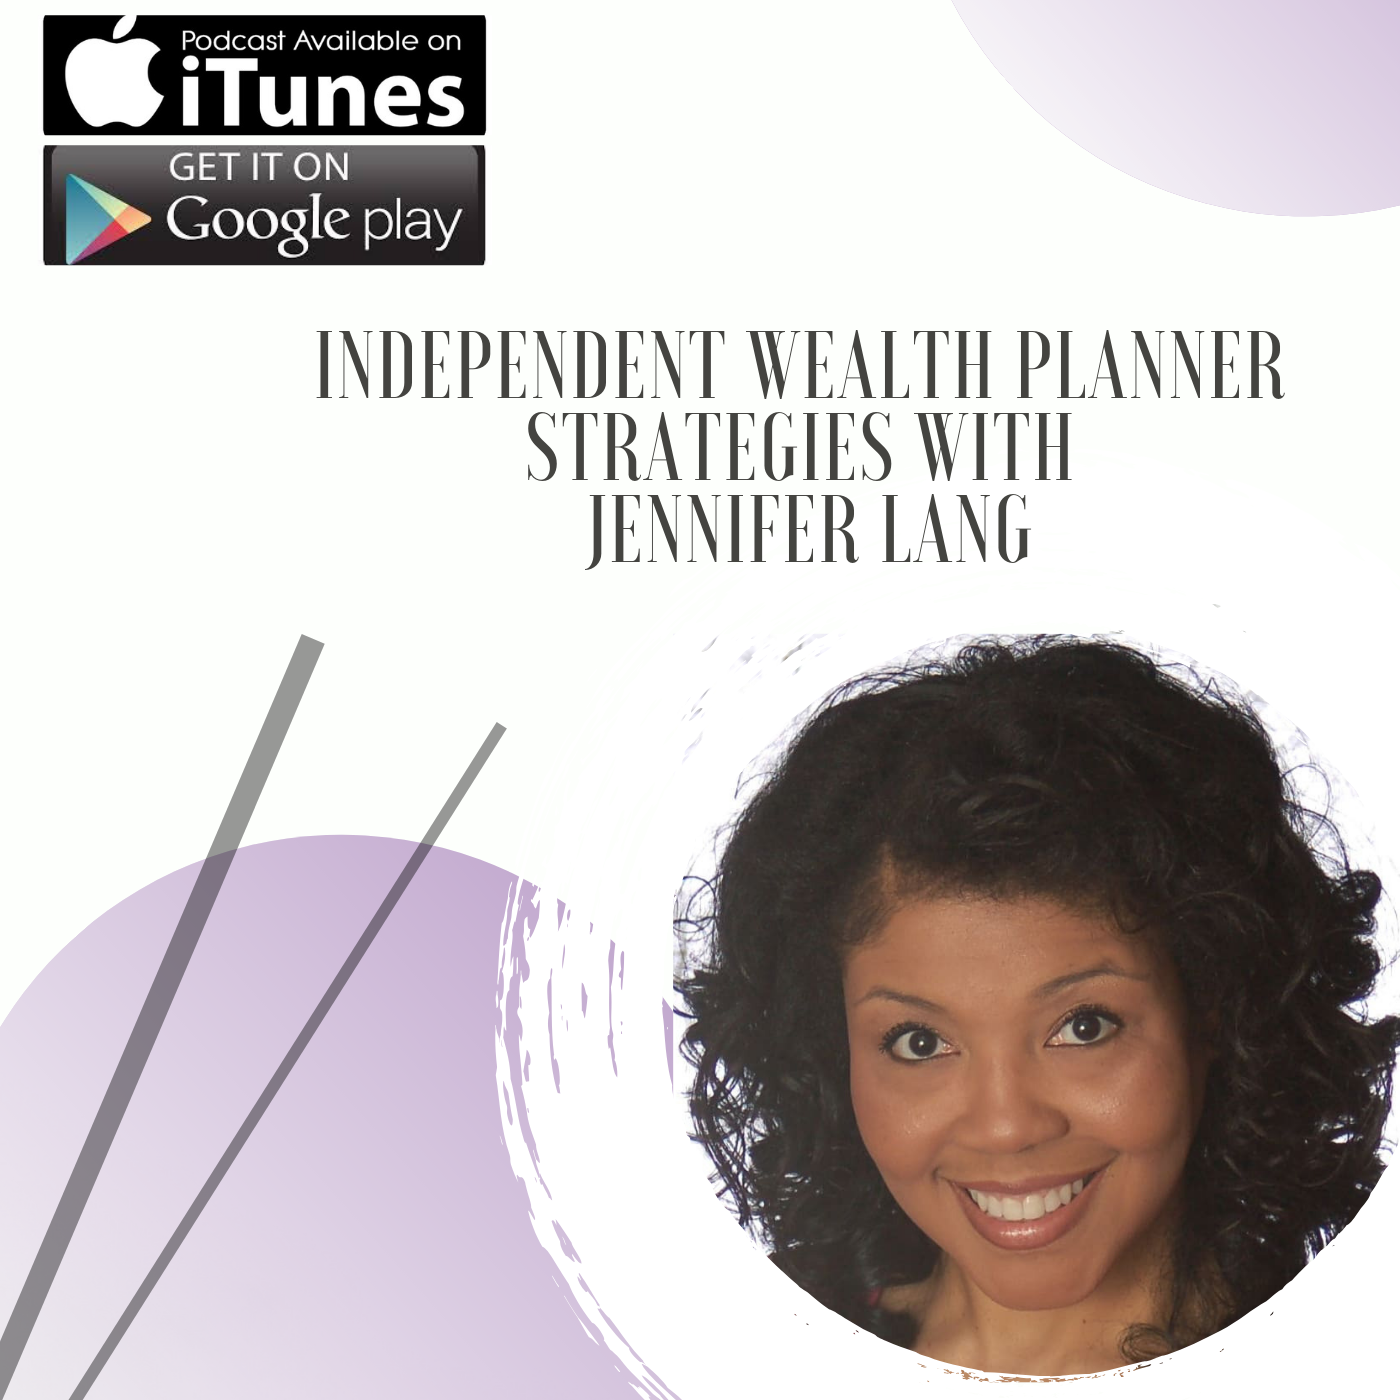 Independent Wealth Planner Strategies with Jennifer Lang Podcast Follow and Share